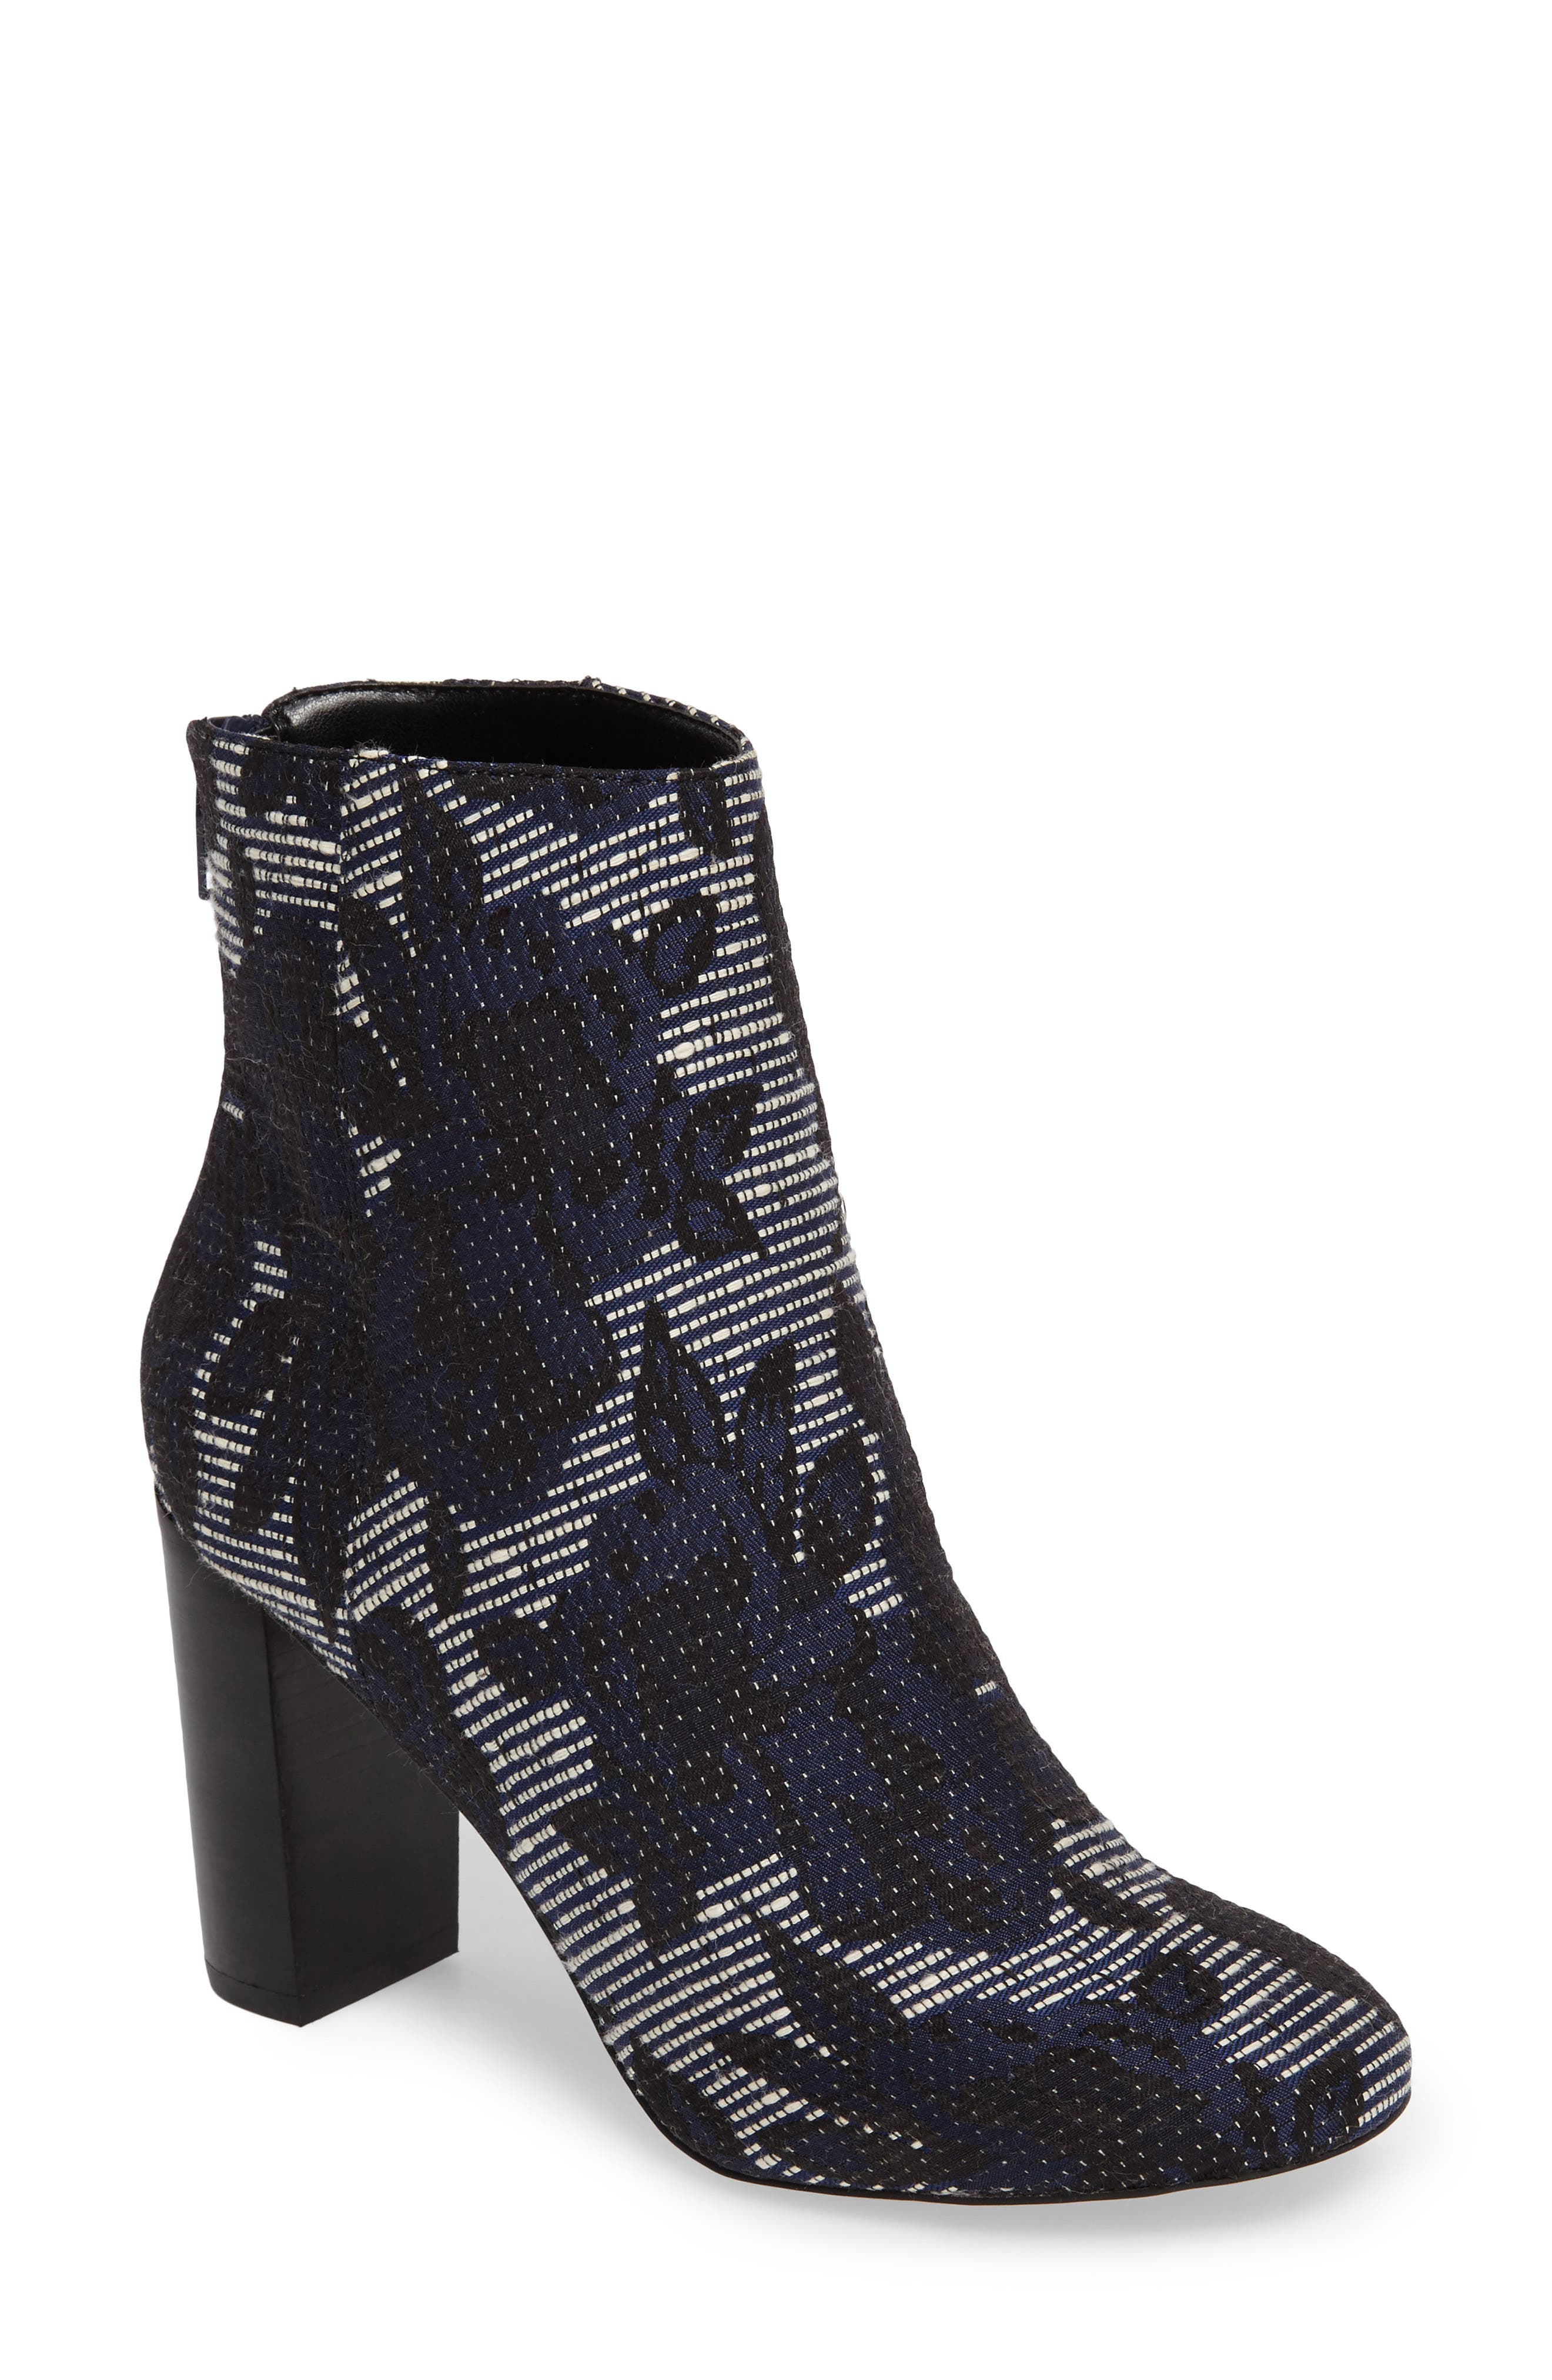 Sole Society Olympia Brocade Bootie (Women)